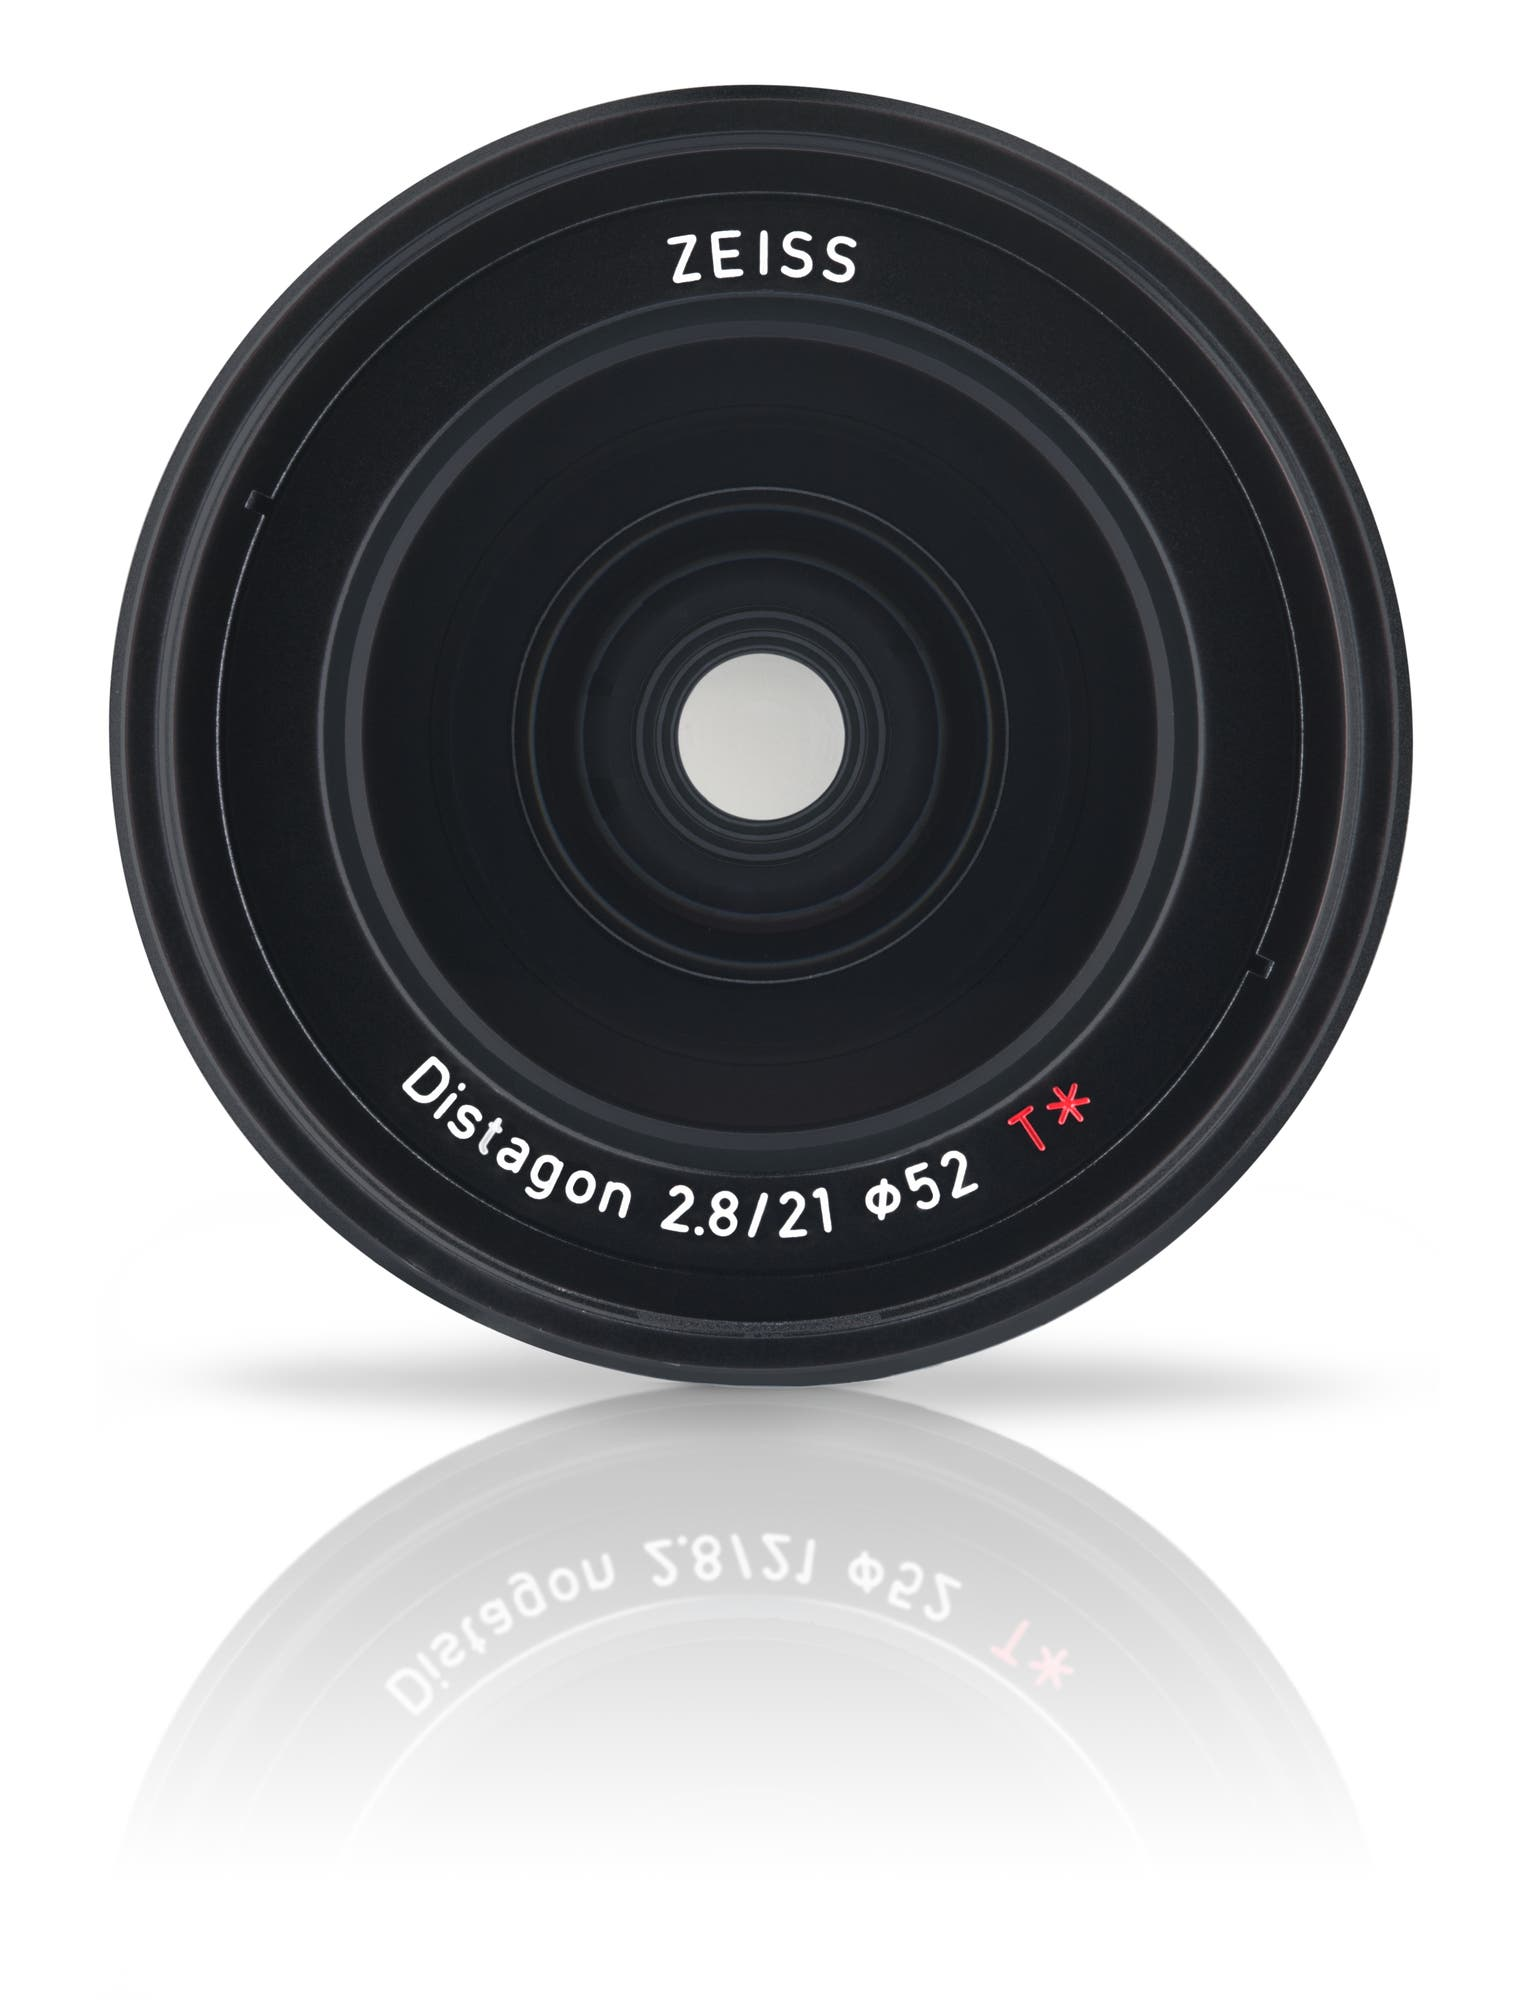 The ZEISS Ventum 21mm F2.8 Has a Sony E Mount for Drone Use